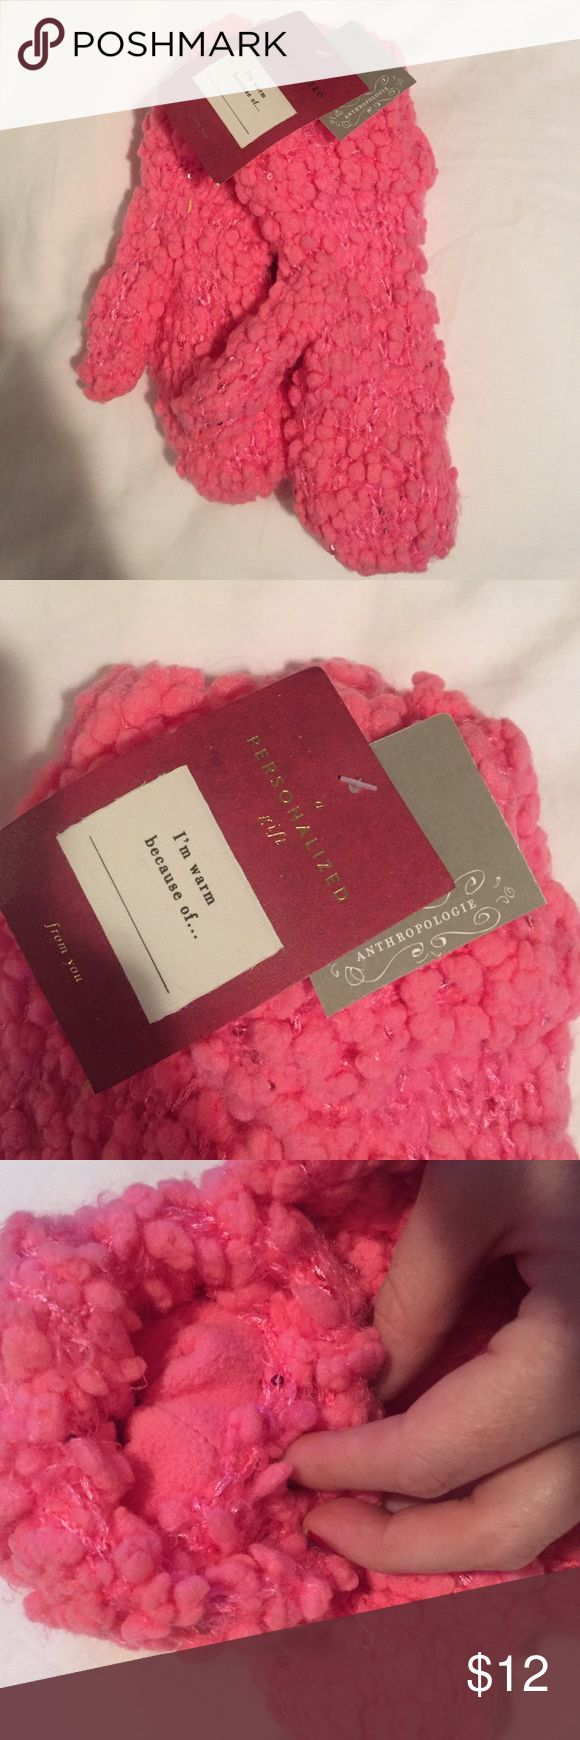 Brand new mittens Anthropologie pink mittens. Super cute & cozy! Brand new with tags. I live in an area where it isn't cold so no need for these. Anthropologie Accessories Scarves & Wraps